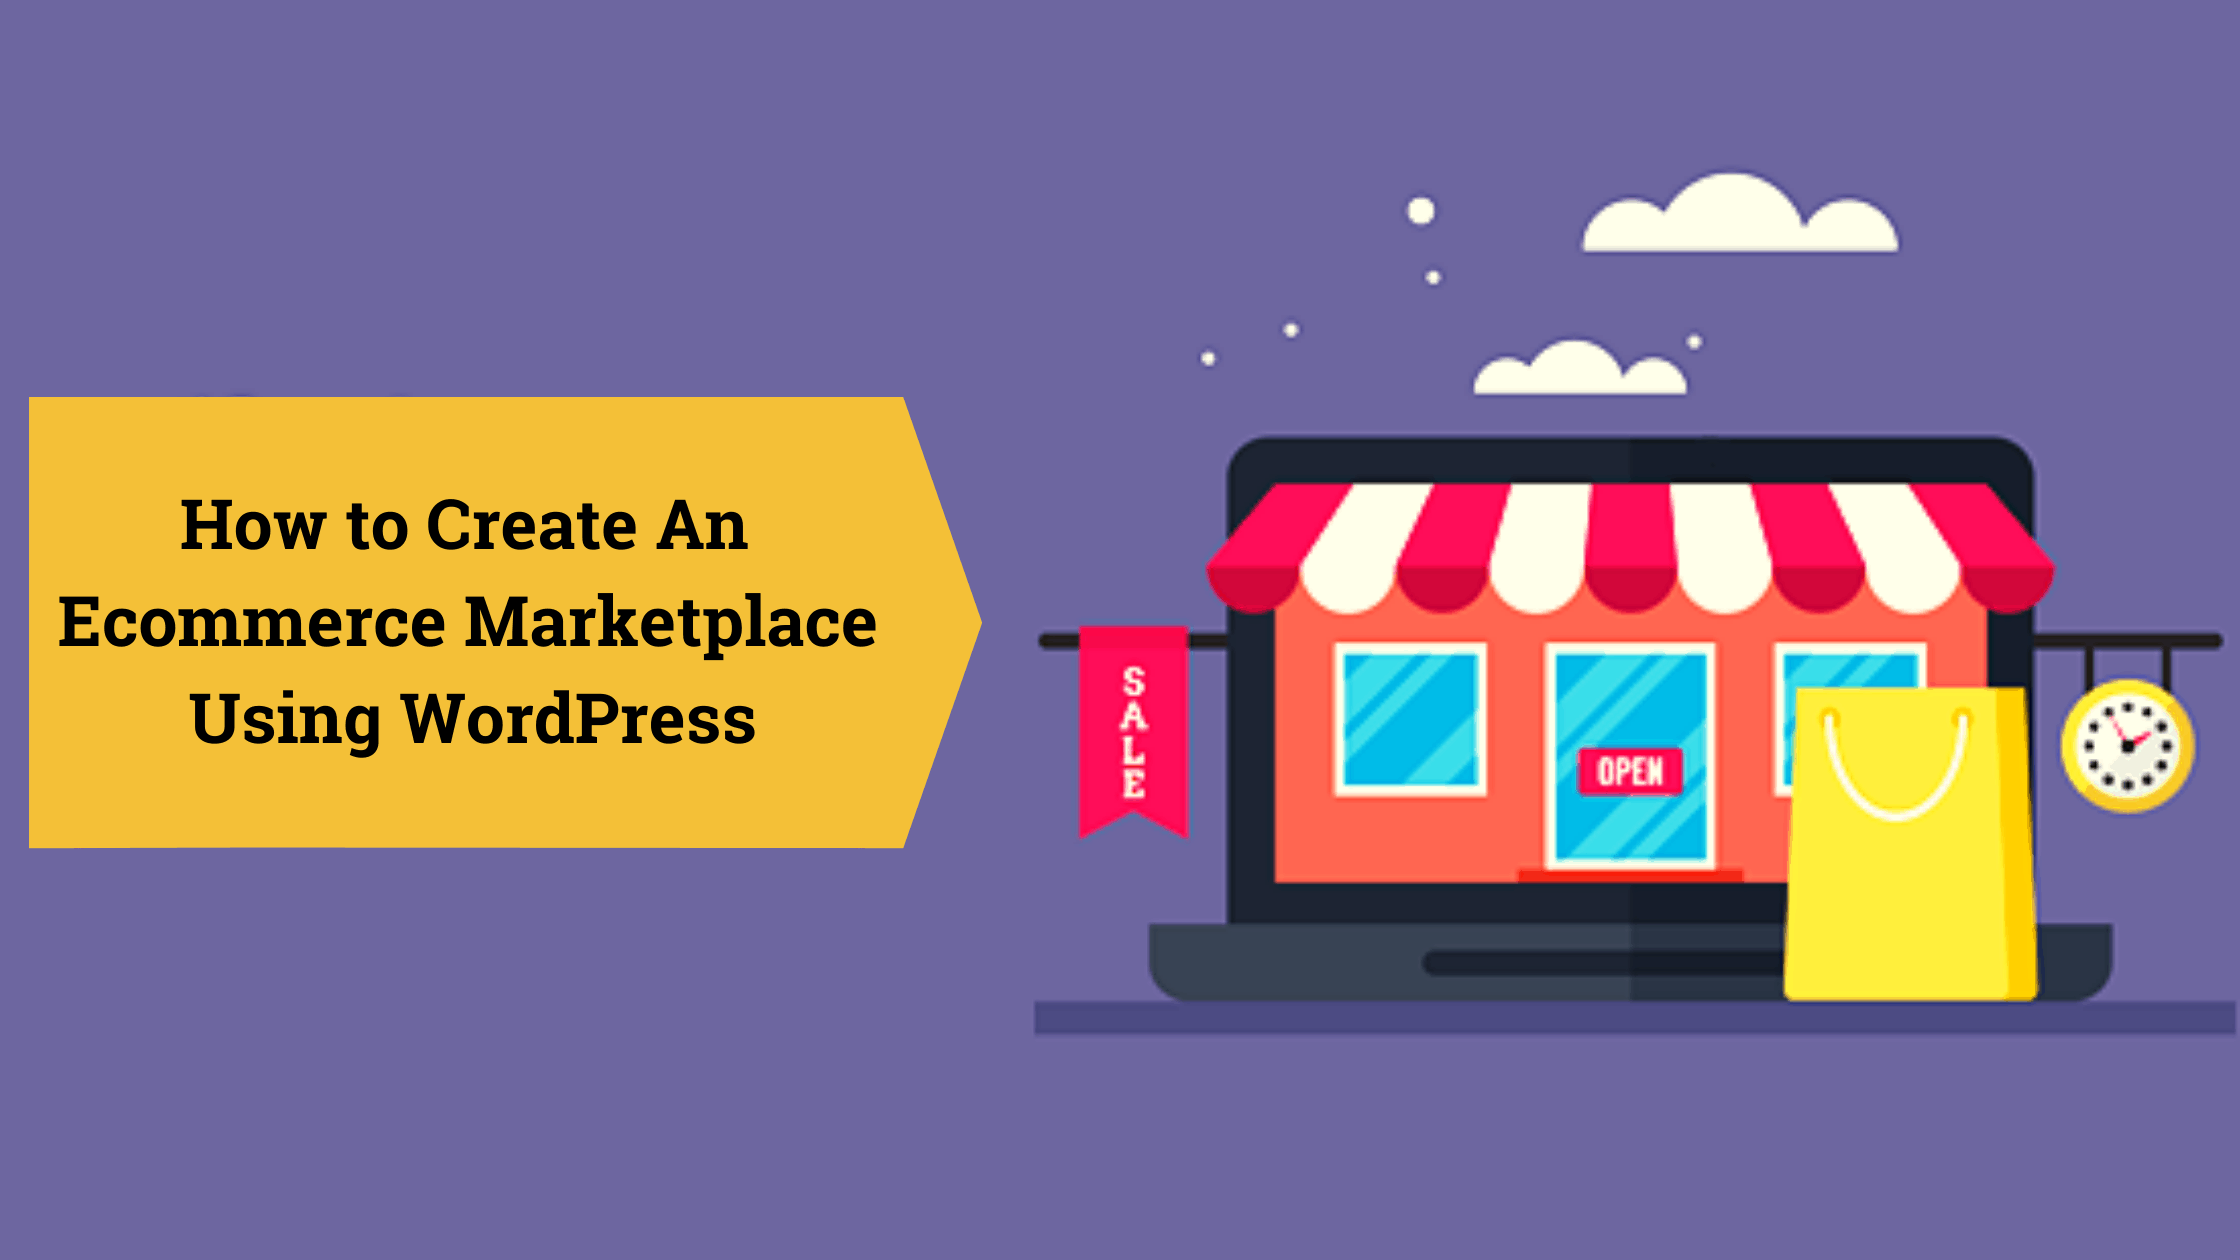 How to Create An Ecommerce Marketplace Using WordPress